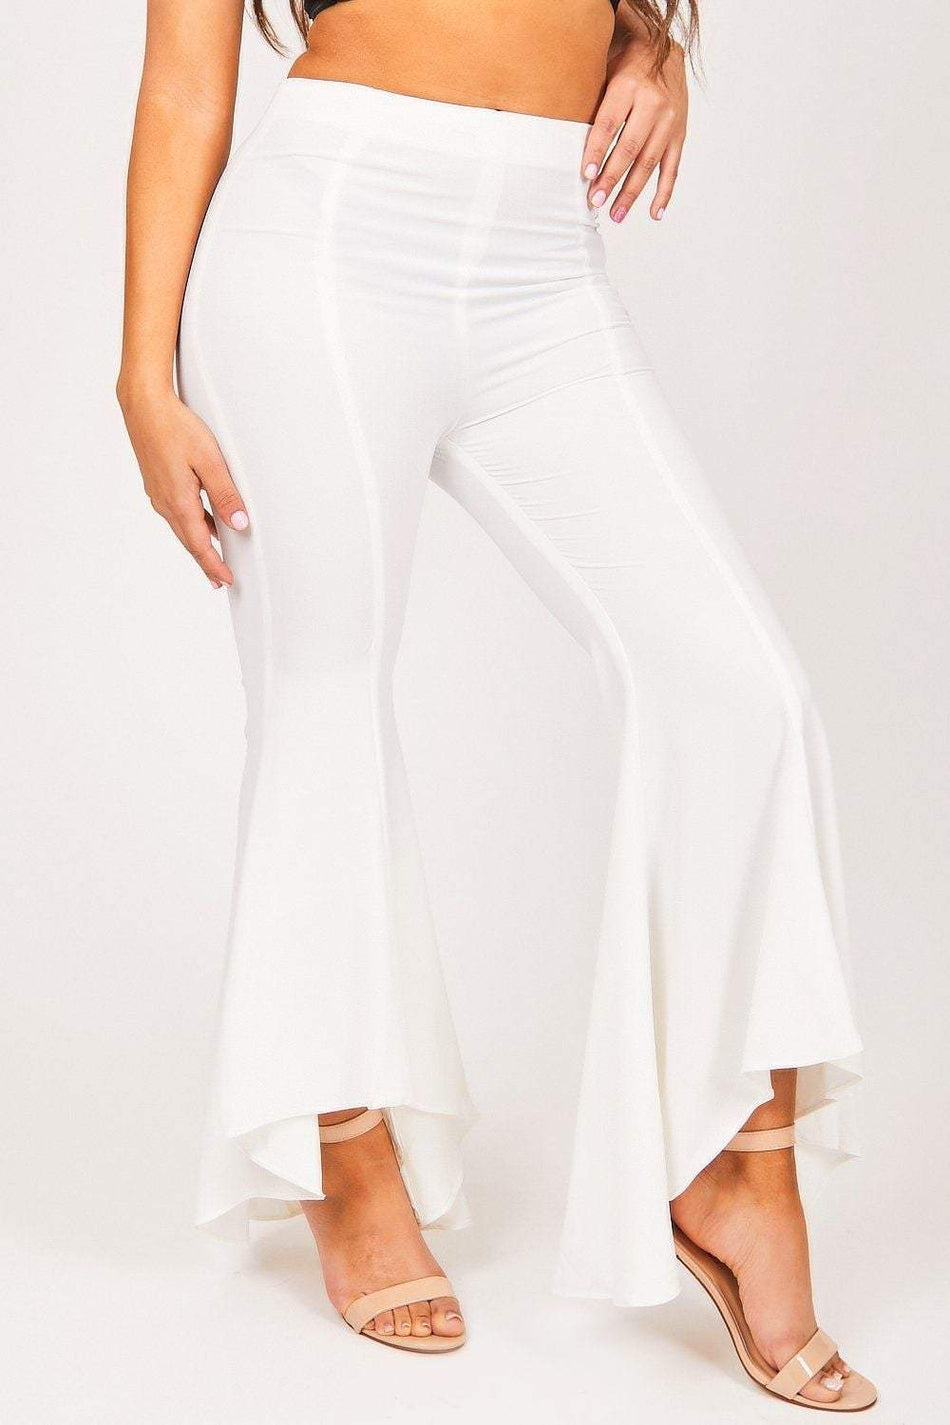 White High Waisted Flare Trousers - KATCH ME